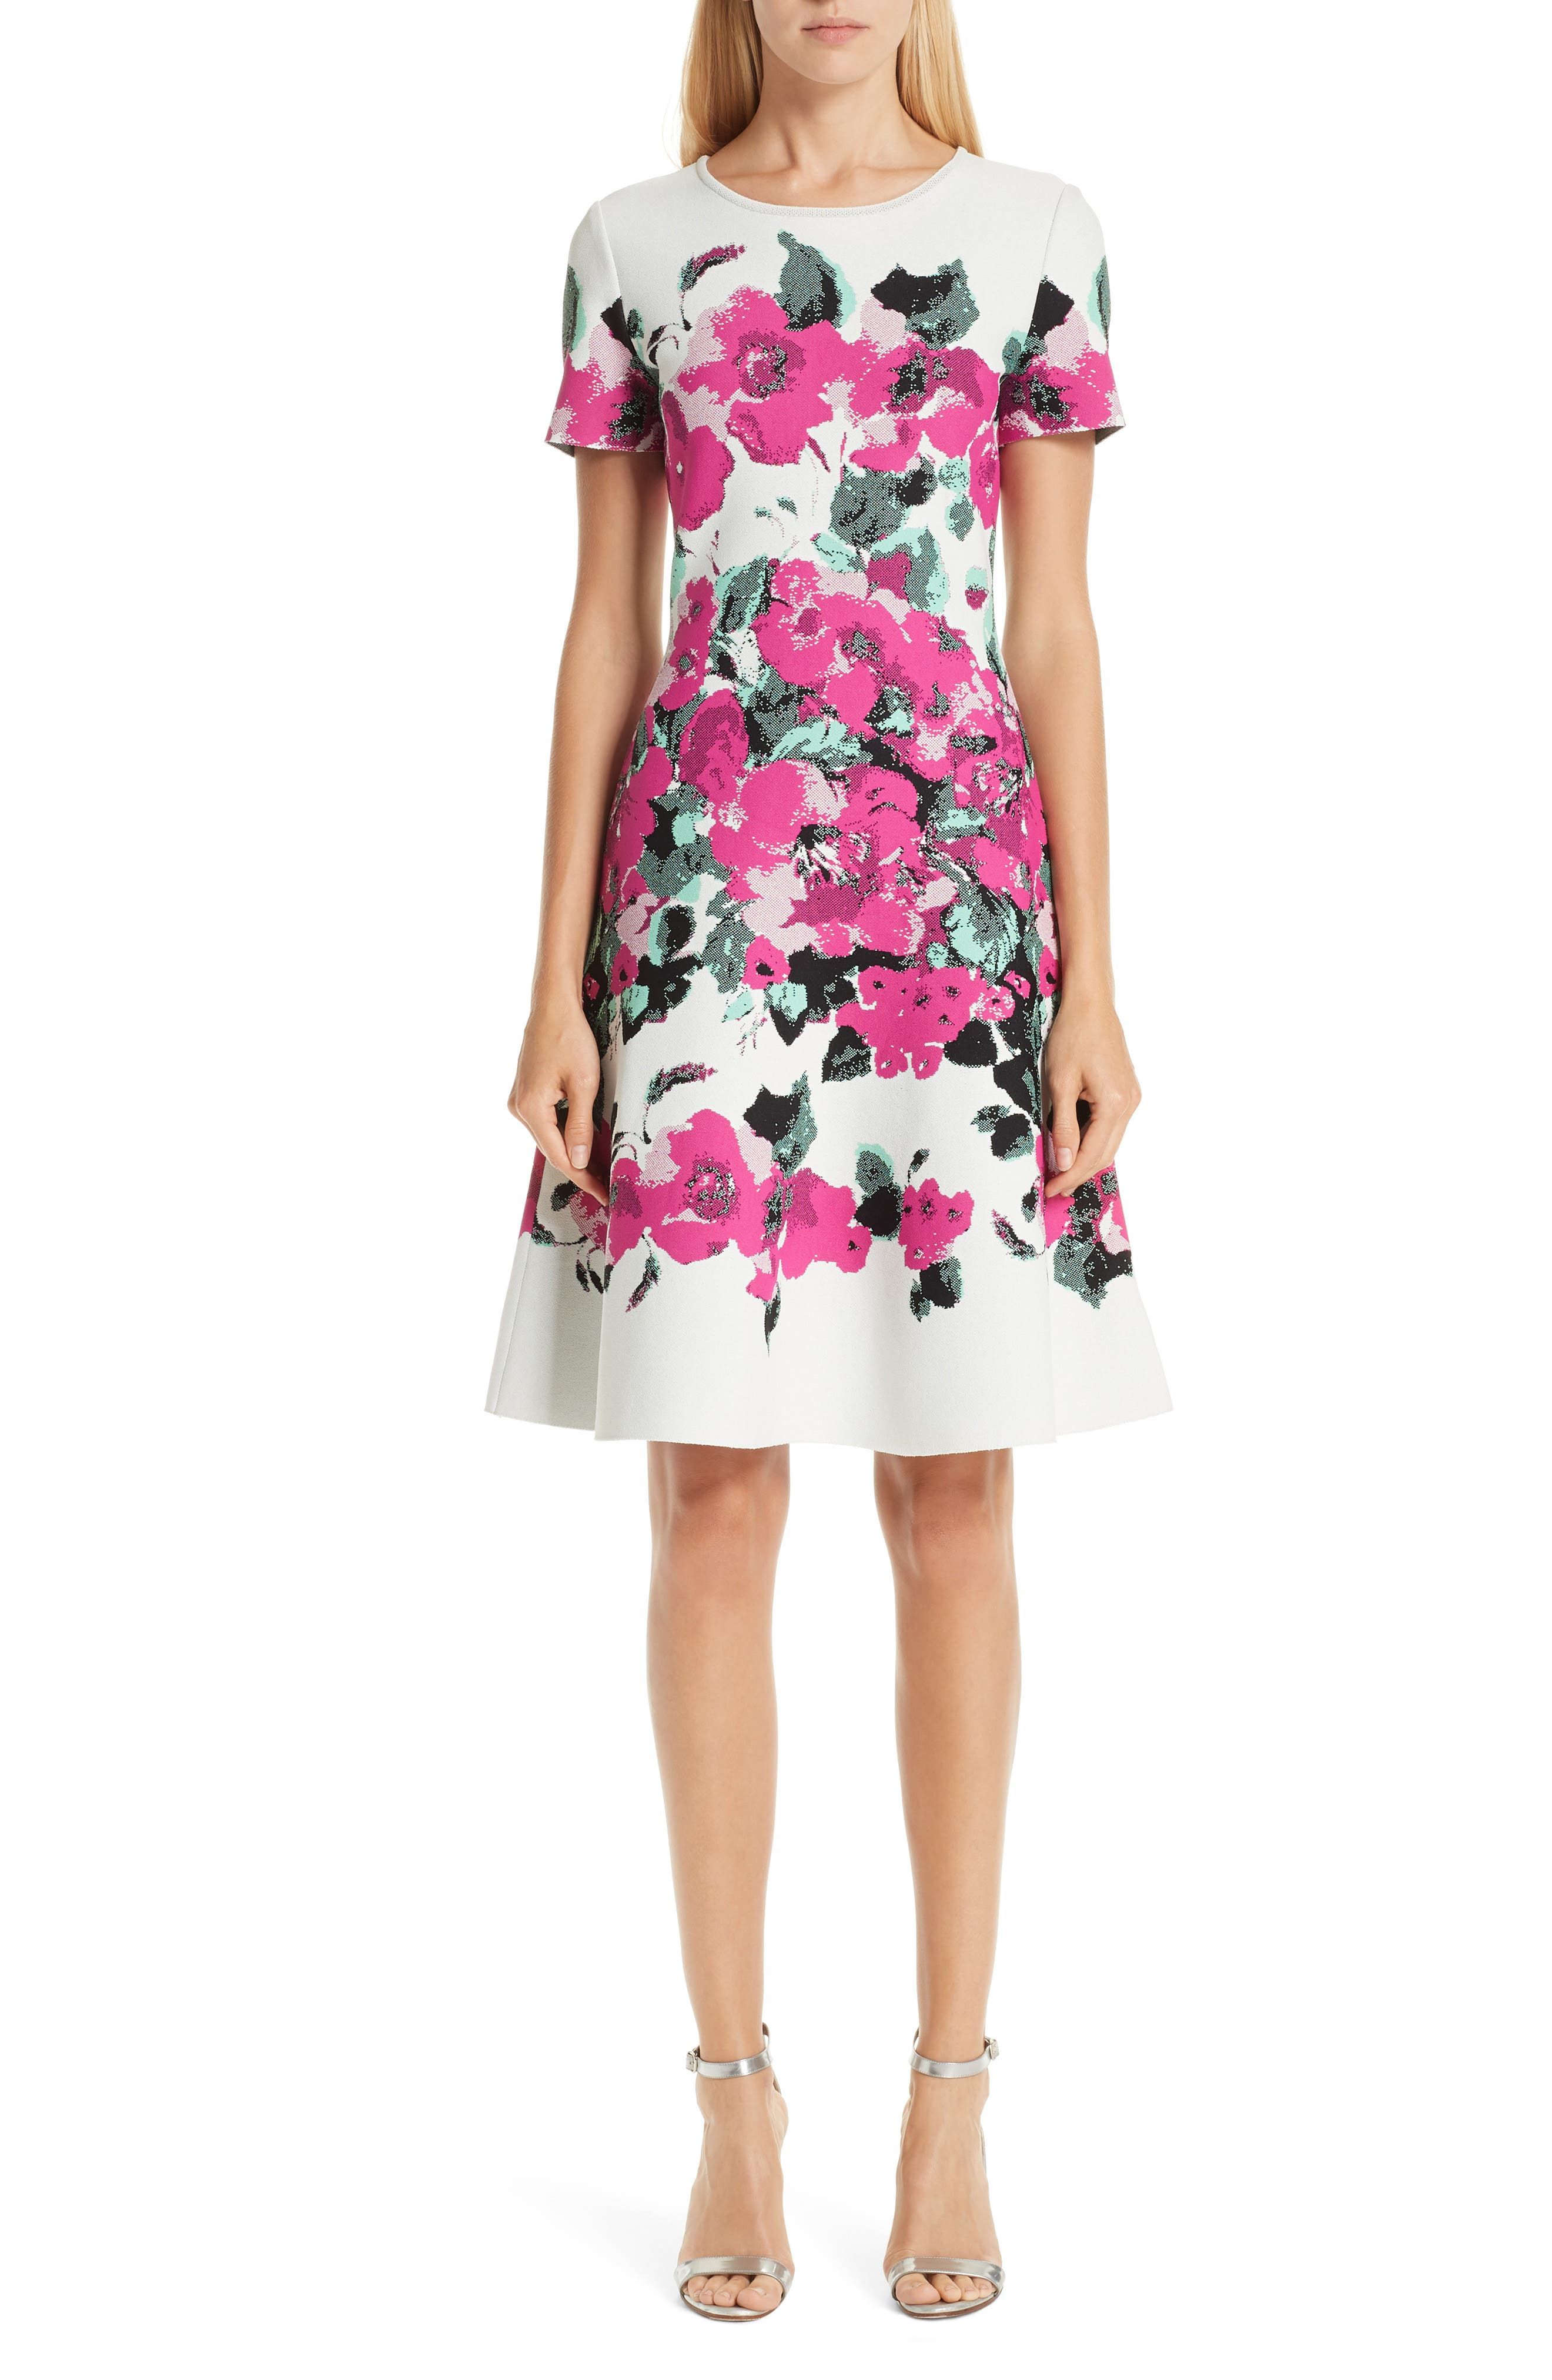 Short-Sleeve Blooming Jacquard Fit-And-Flare Dress in Cream/ Camellia Multi